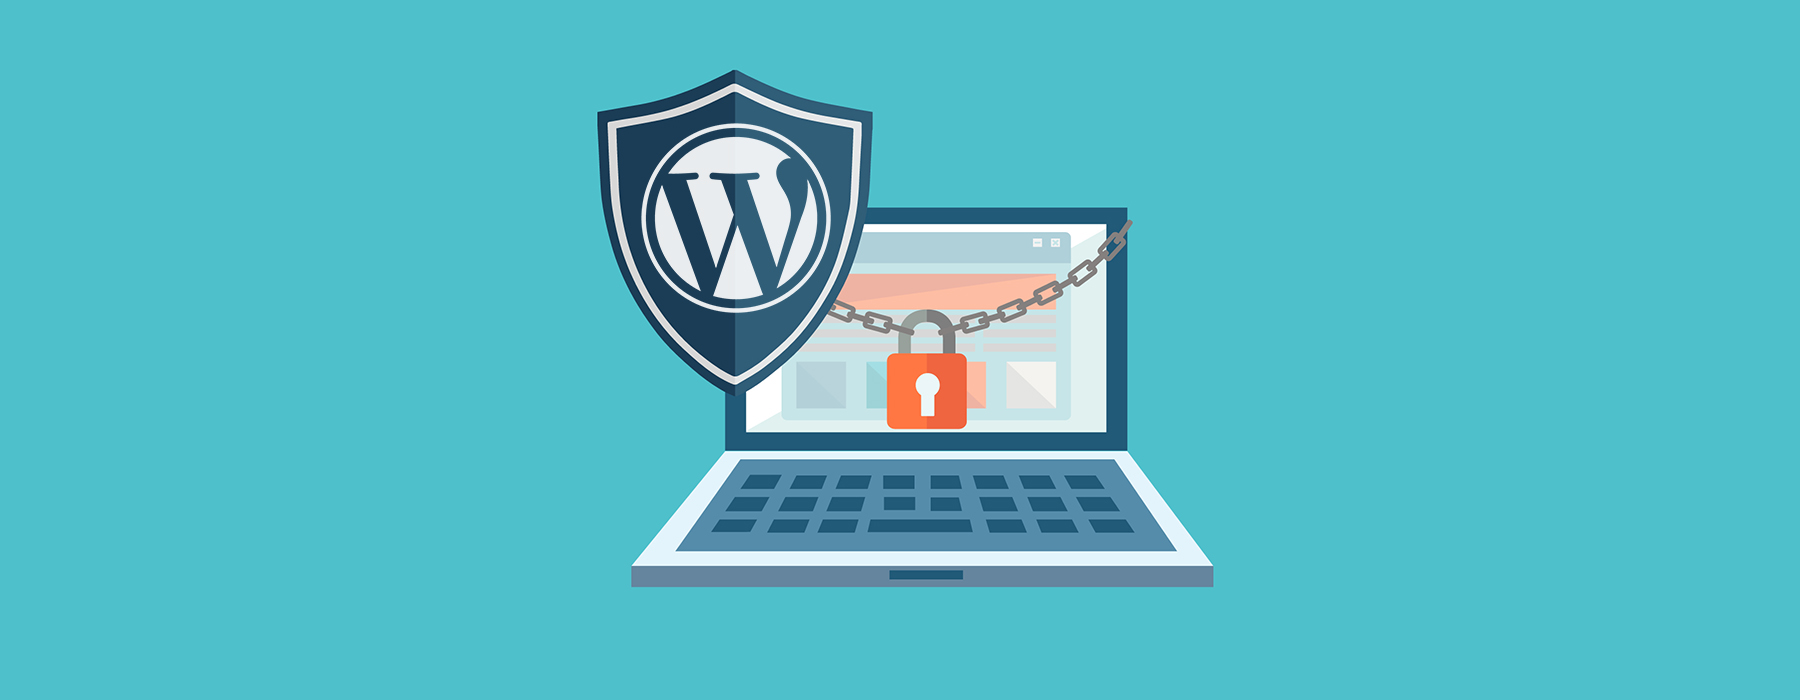 website security wordpress security